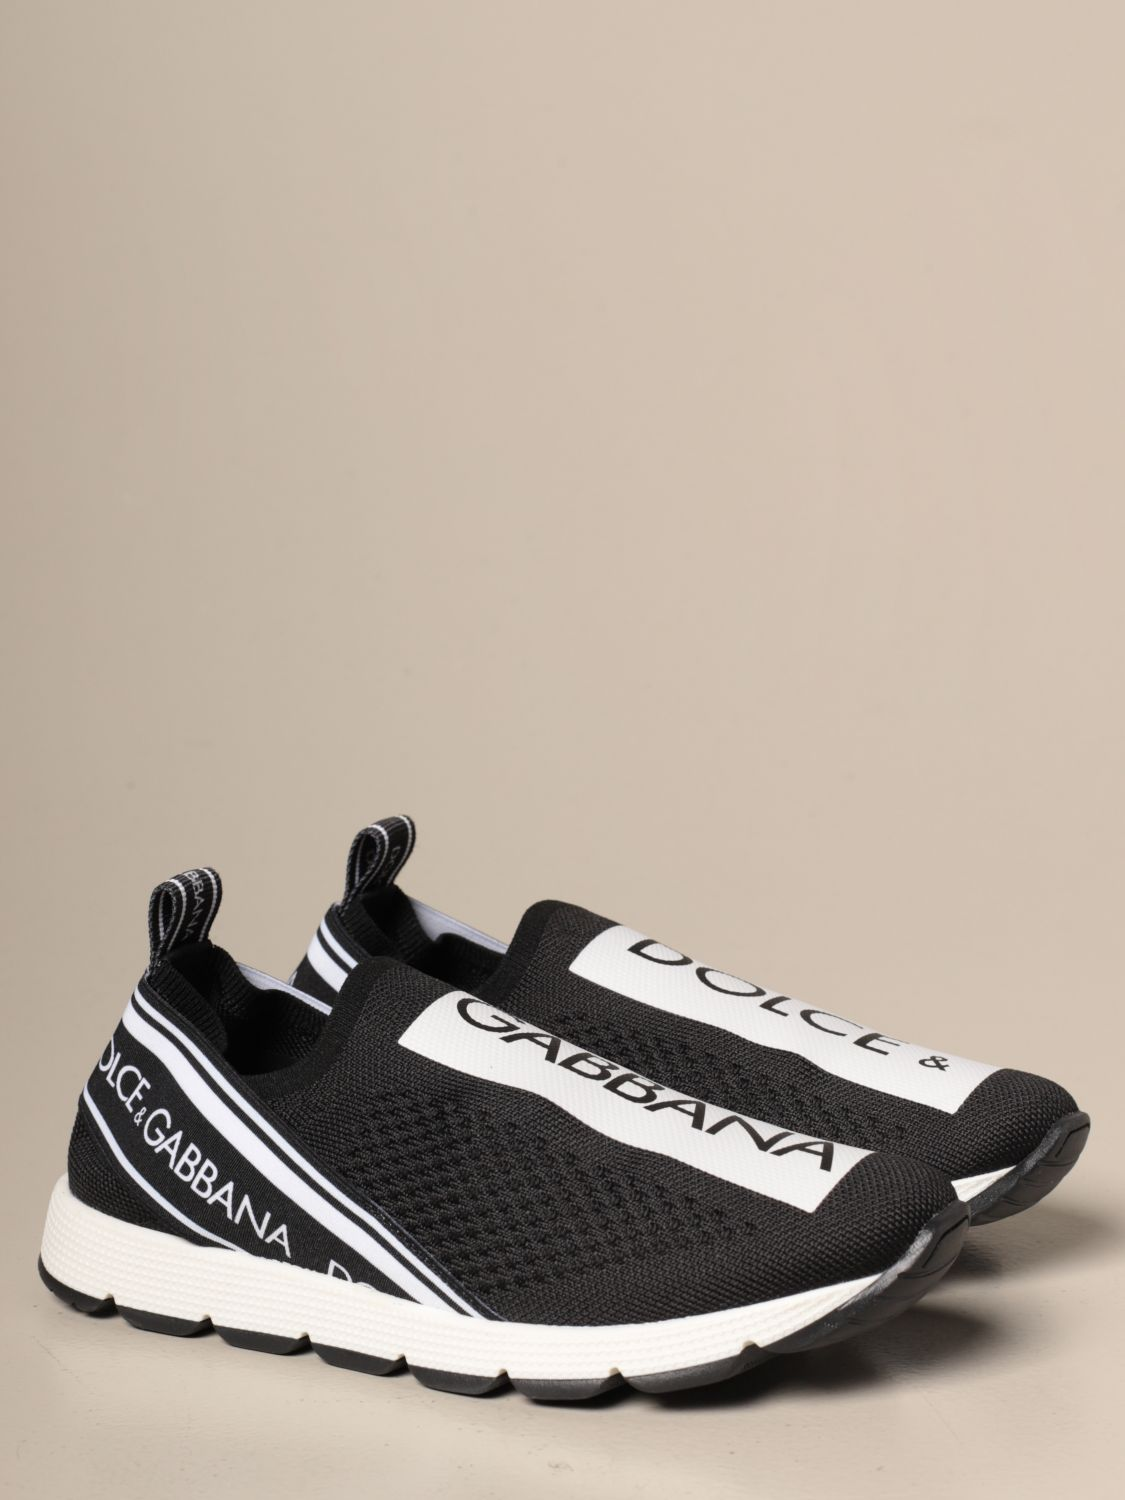 Shoes Dolce & Gabbana: Dolce & Gabbana slip on sneakers with logo black 2